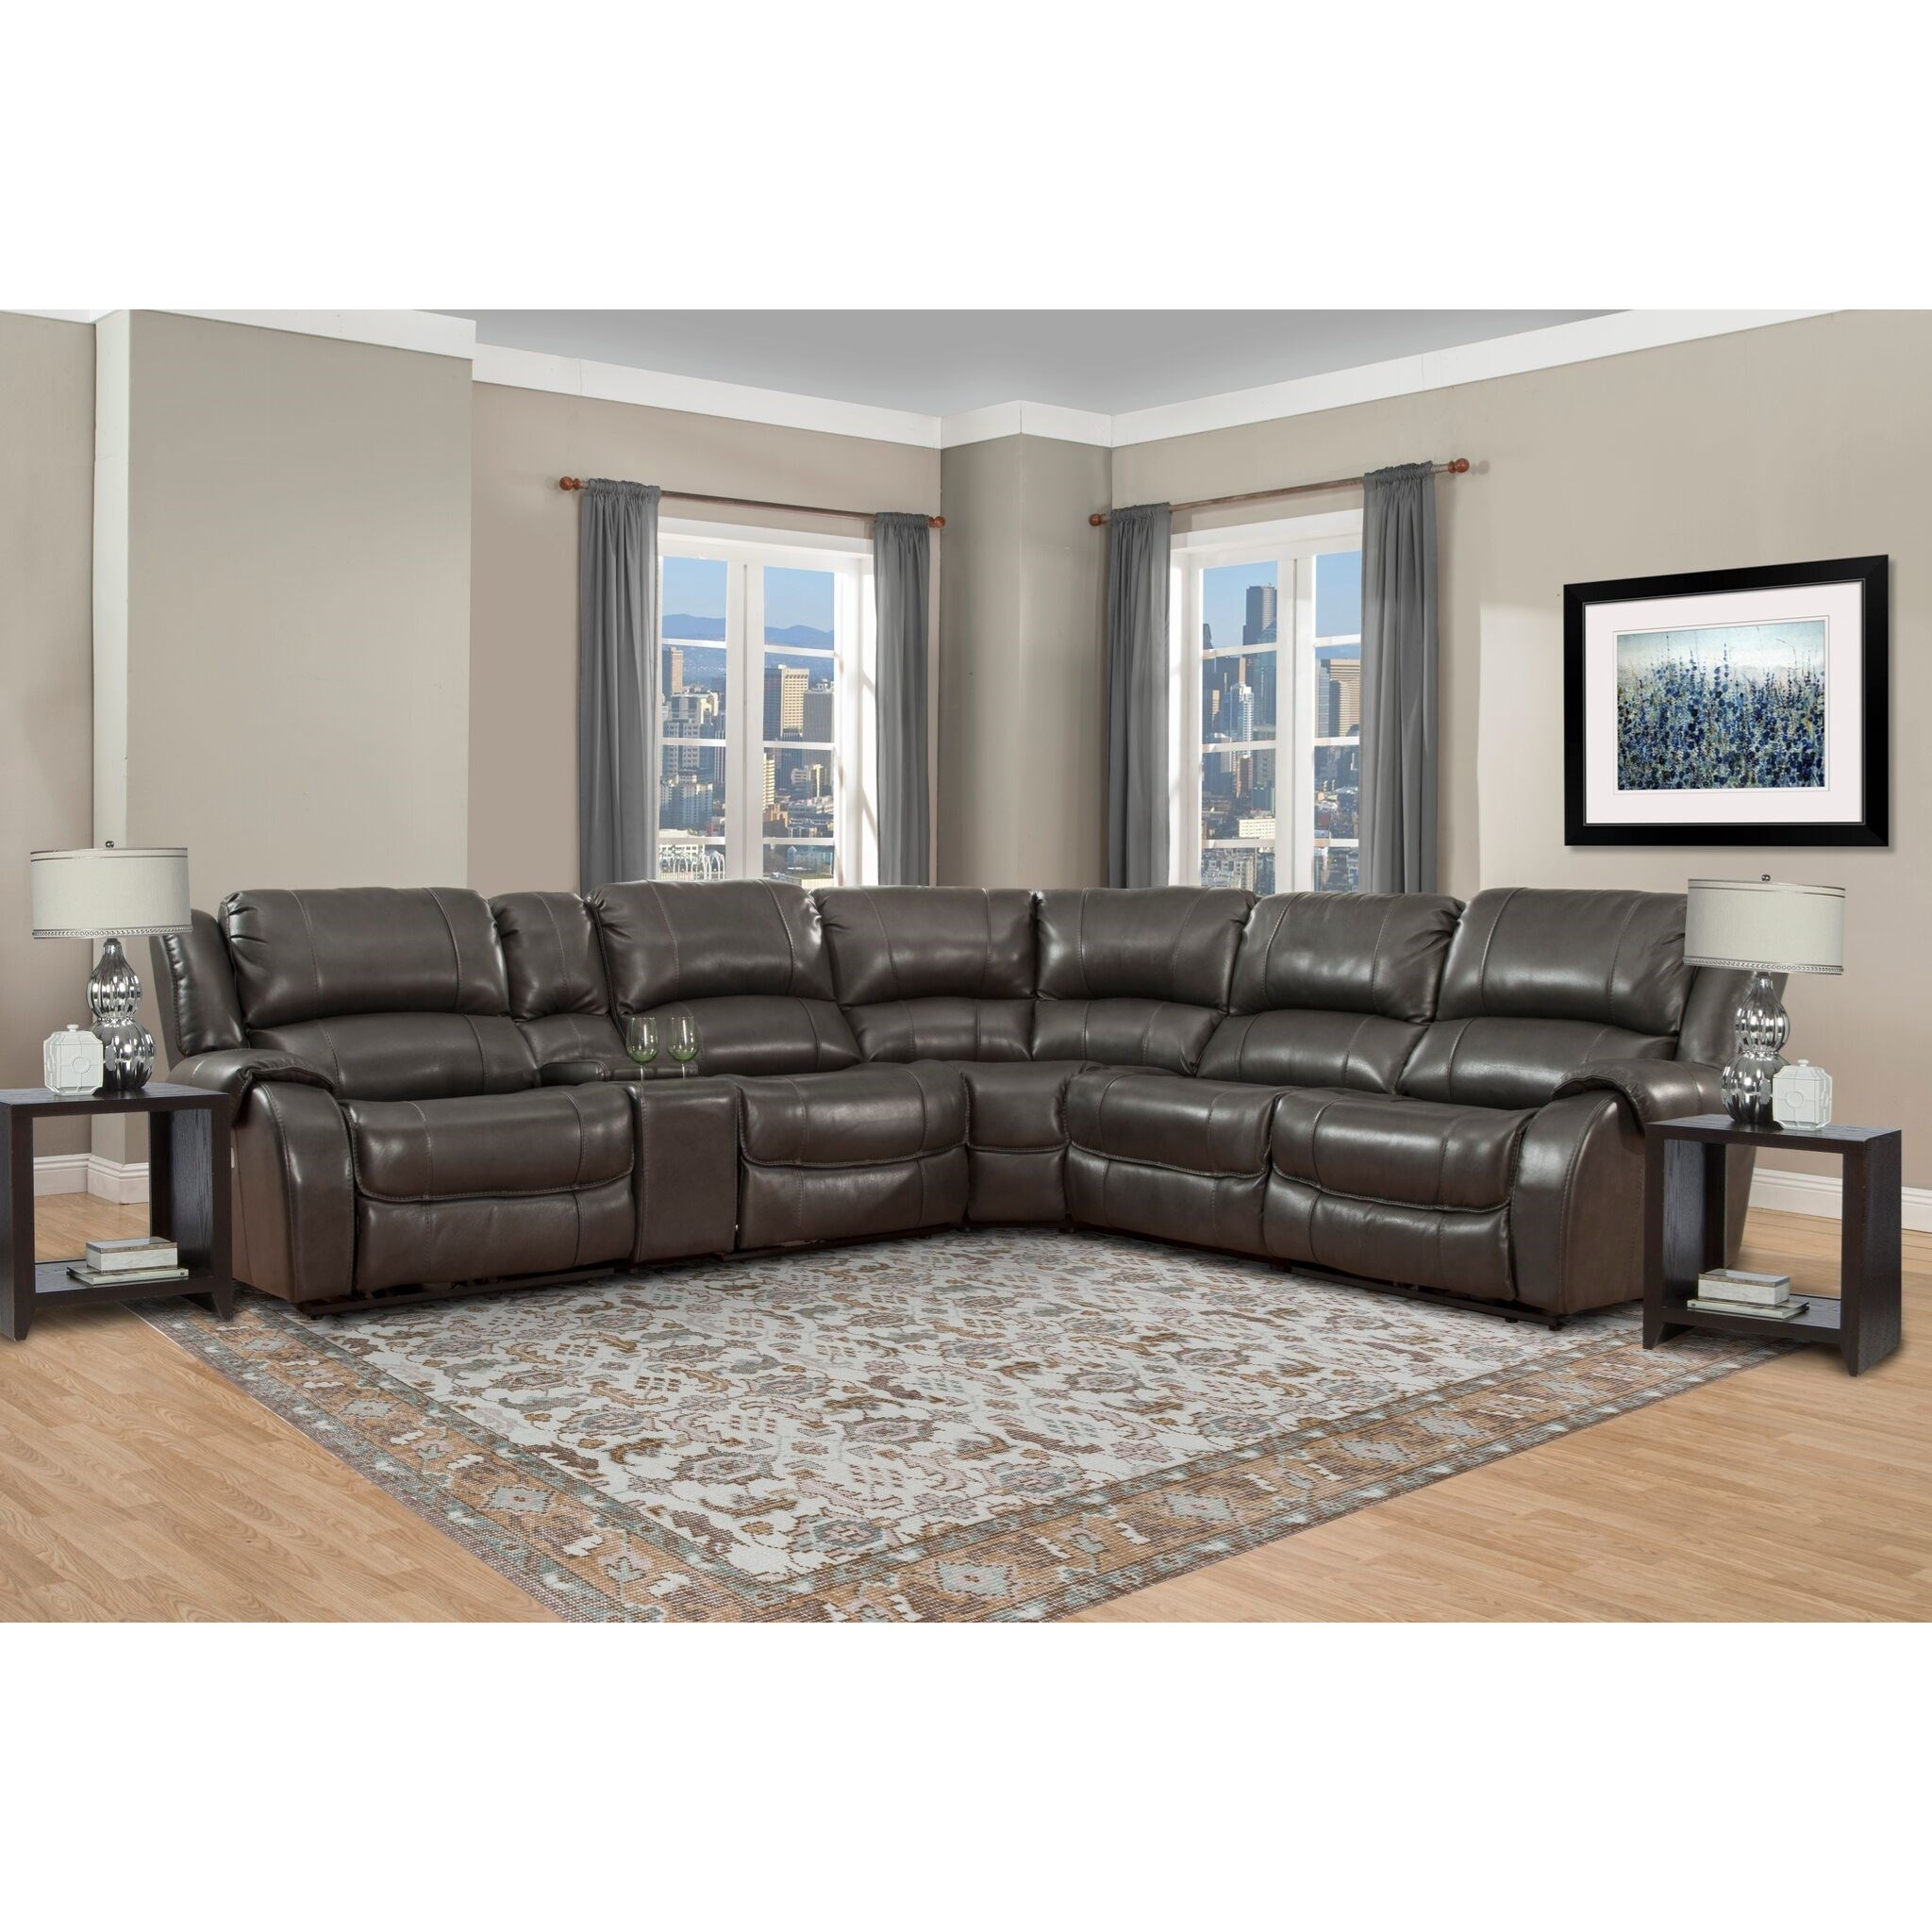 sofa rph versace uk parker living ulysses power reclining sectional with